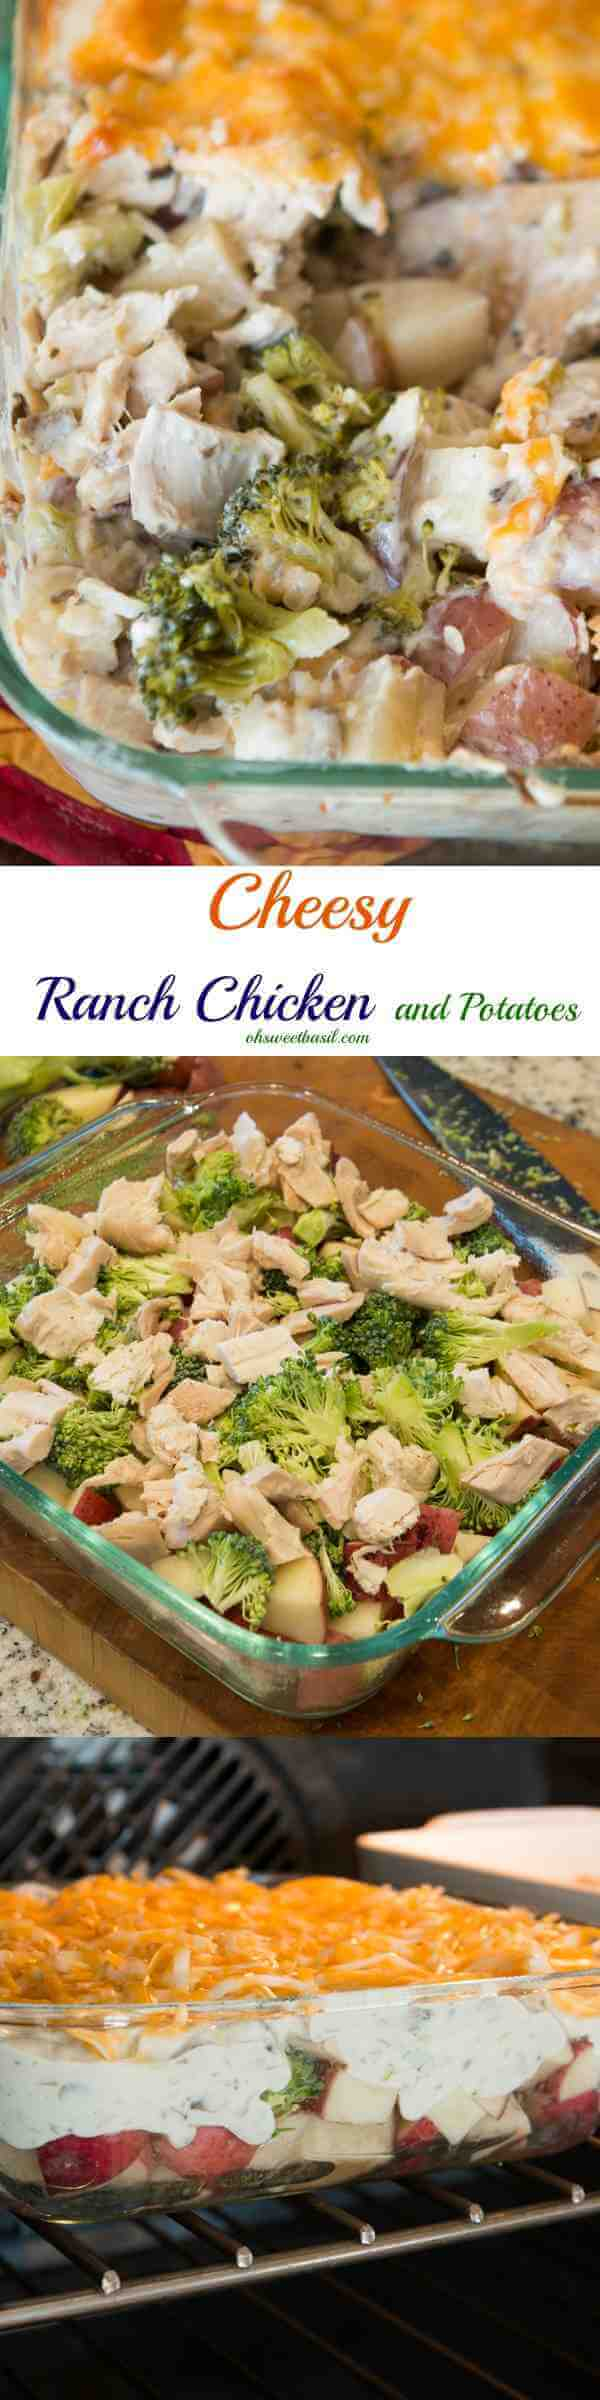 cheesy ranch chicken and potatoes casserole is such an easy way to use up leftovers! ohsweetbasil.com